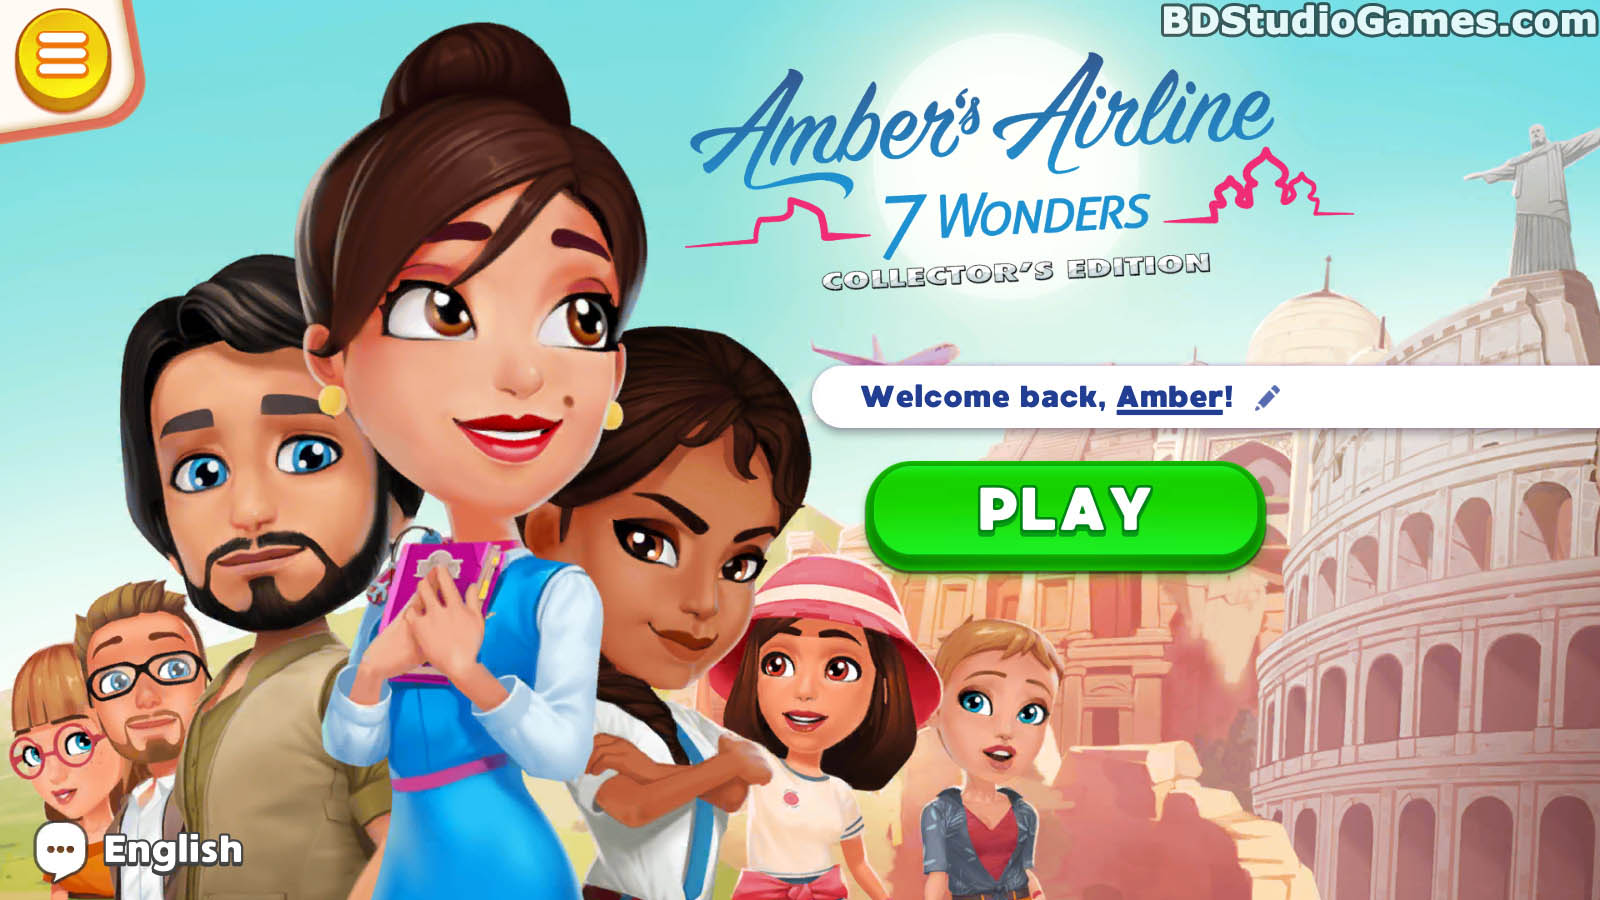 Amber's Airline: 7 Wonders Collector's Edition Free Download Screenshots 01